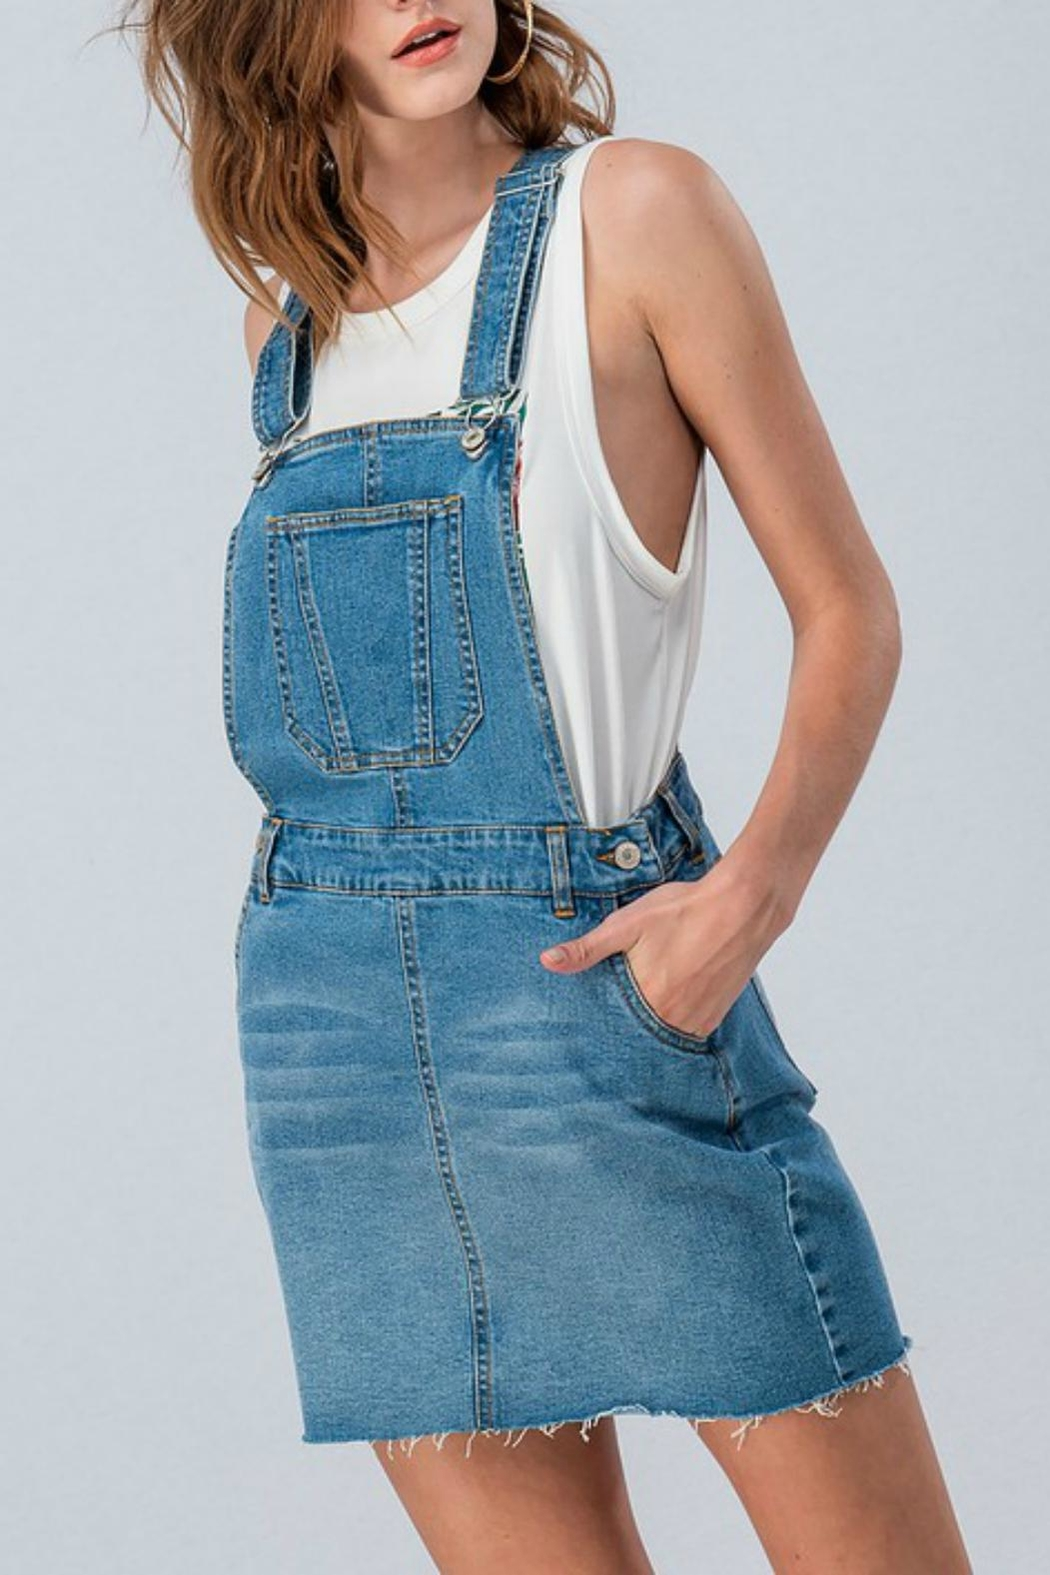 Pretty Little Things Denim Overall Dress - Main Image